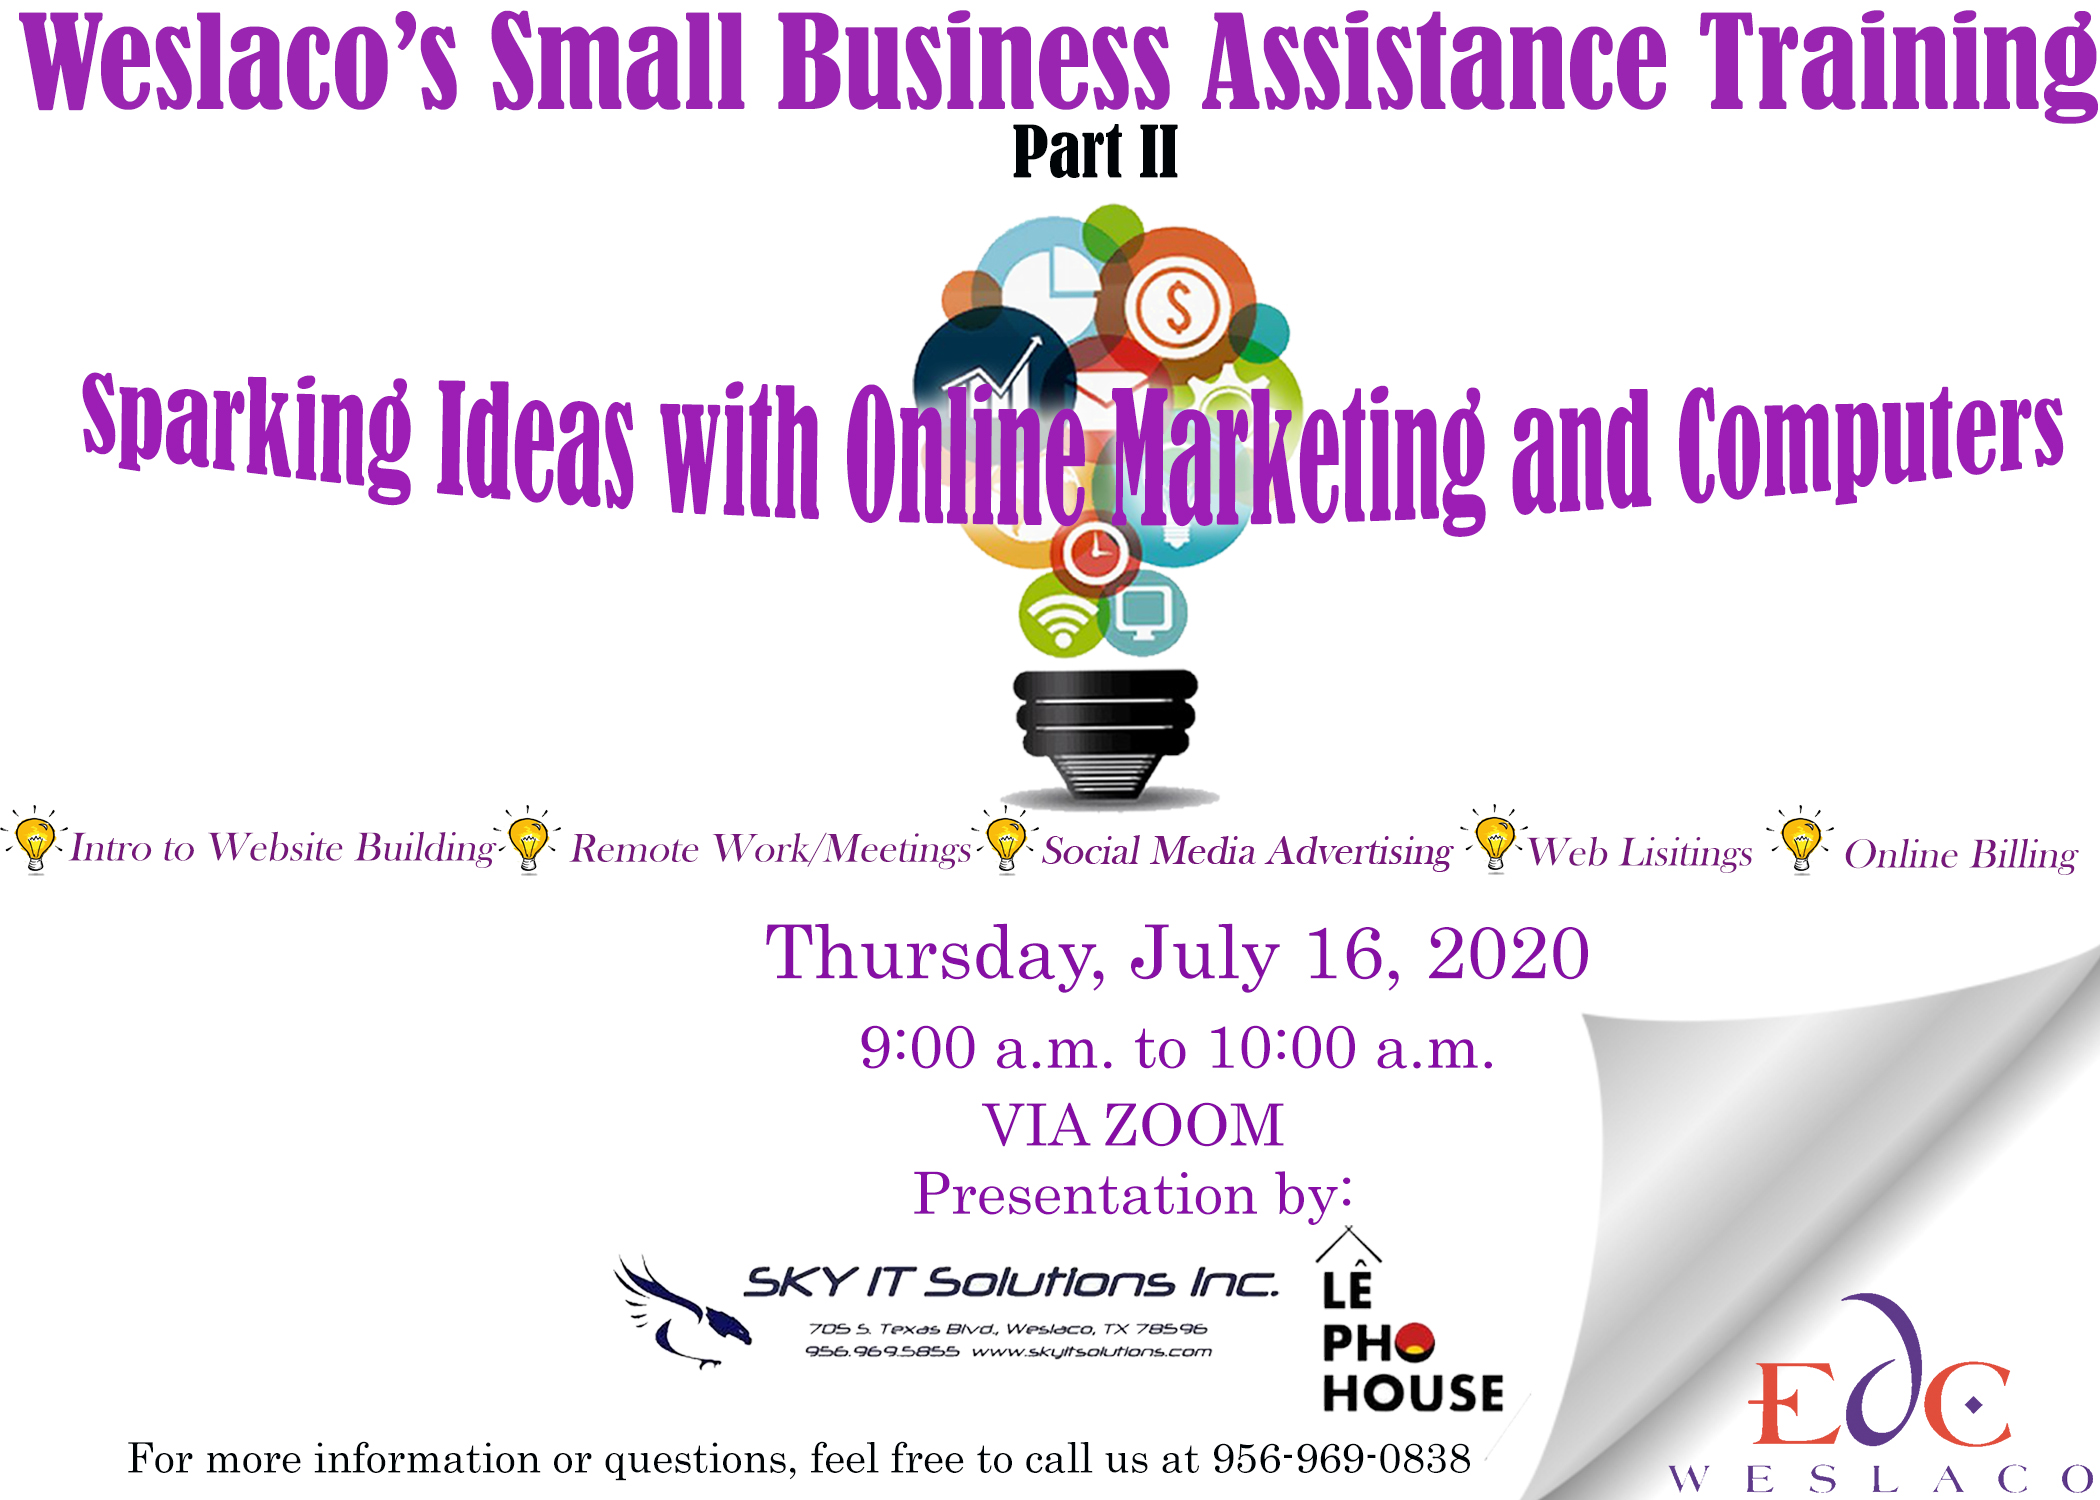 Weslaco EDC Small Business Training